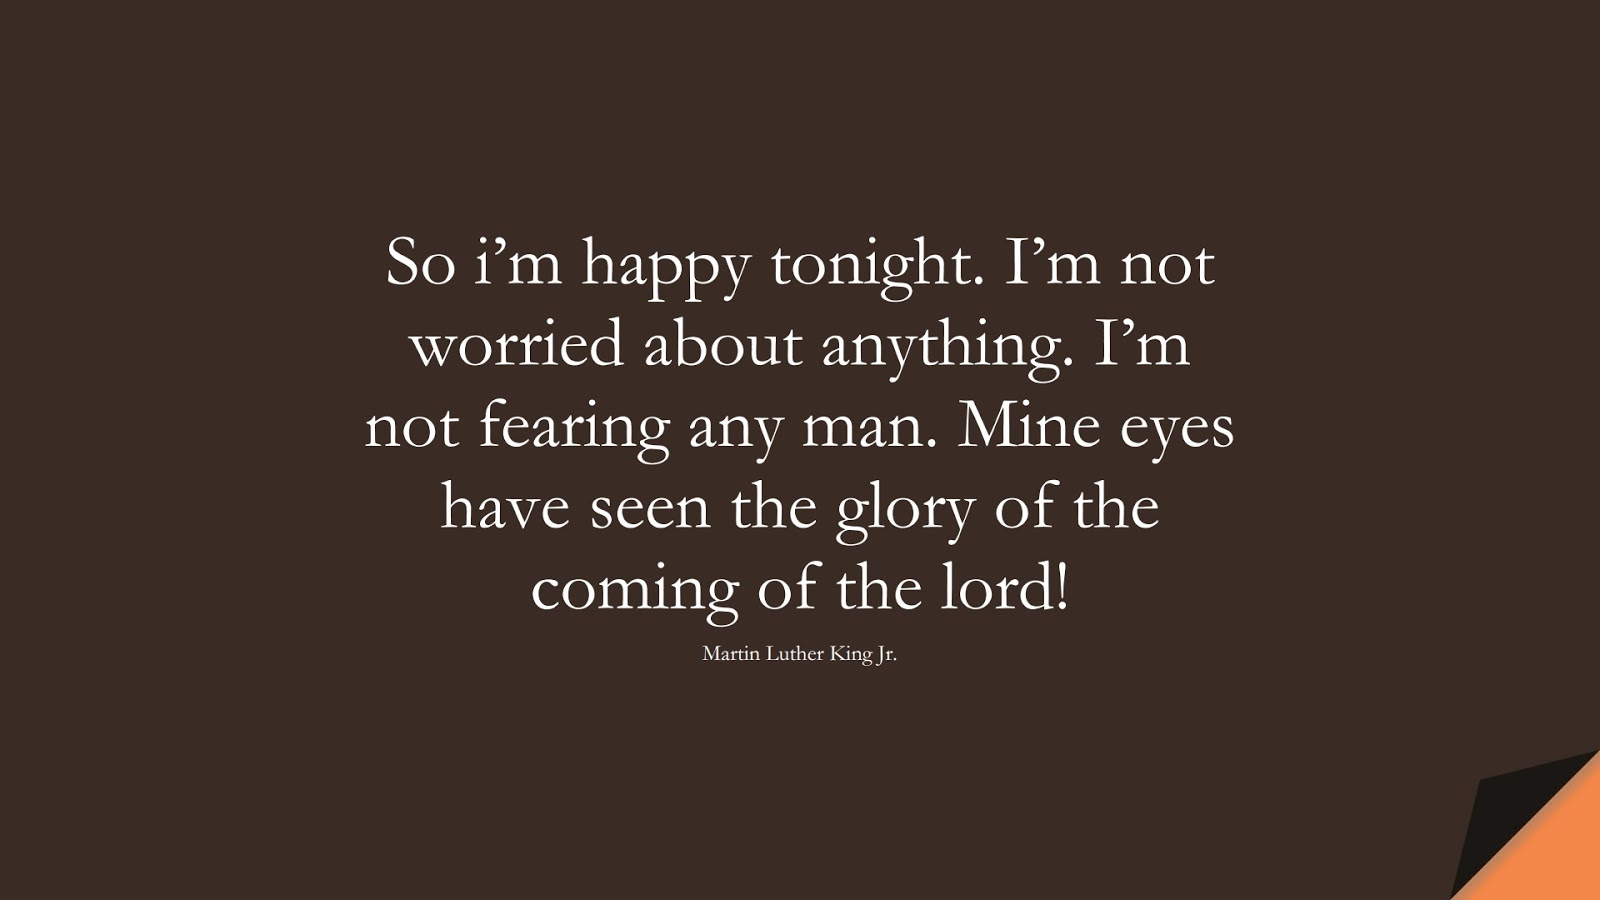 So i'm happy tonight. I'm not worried about anything. I'm not fearing any man. Mine eyes have seen the glory of the coming of the lord! (Martin Luther King Jr.);  #MartinLutherKingJrQuotes